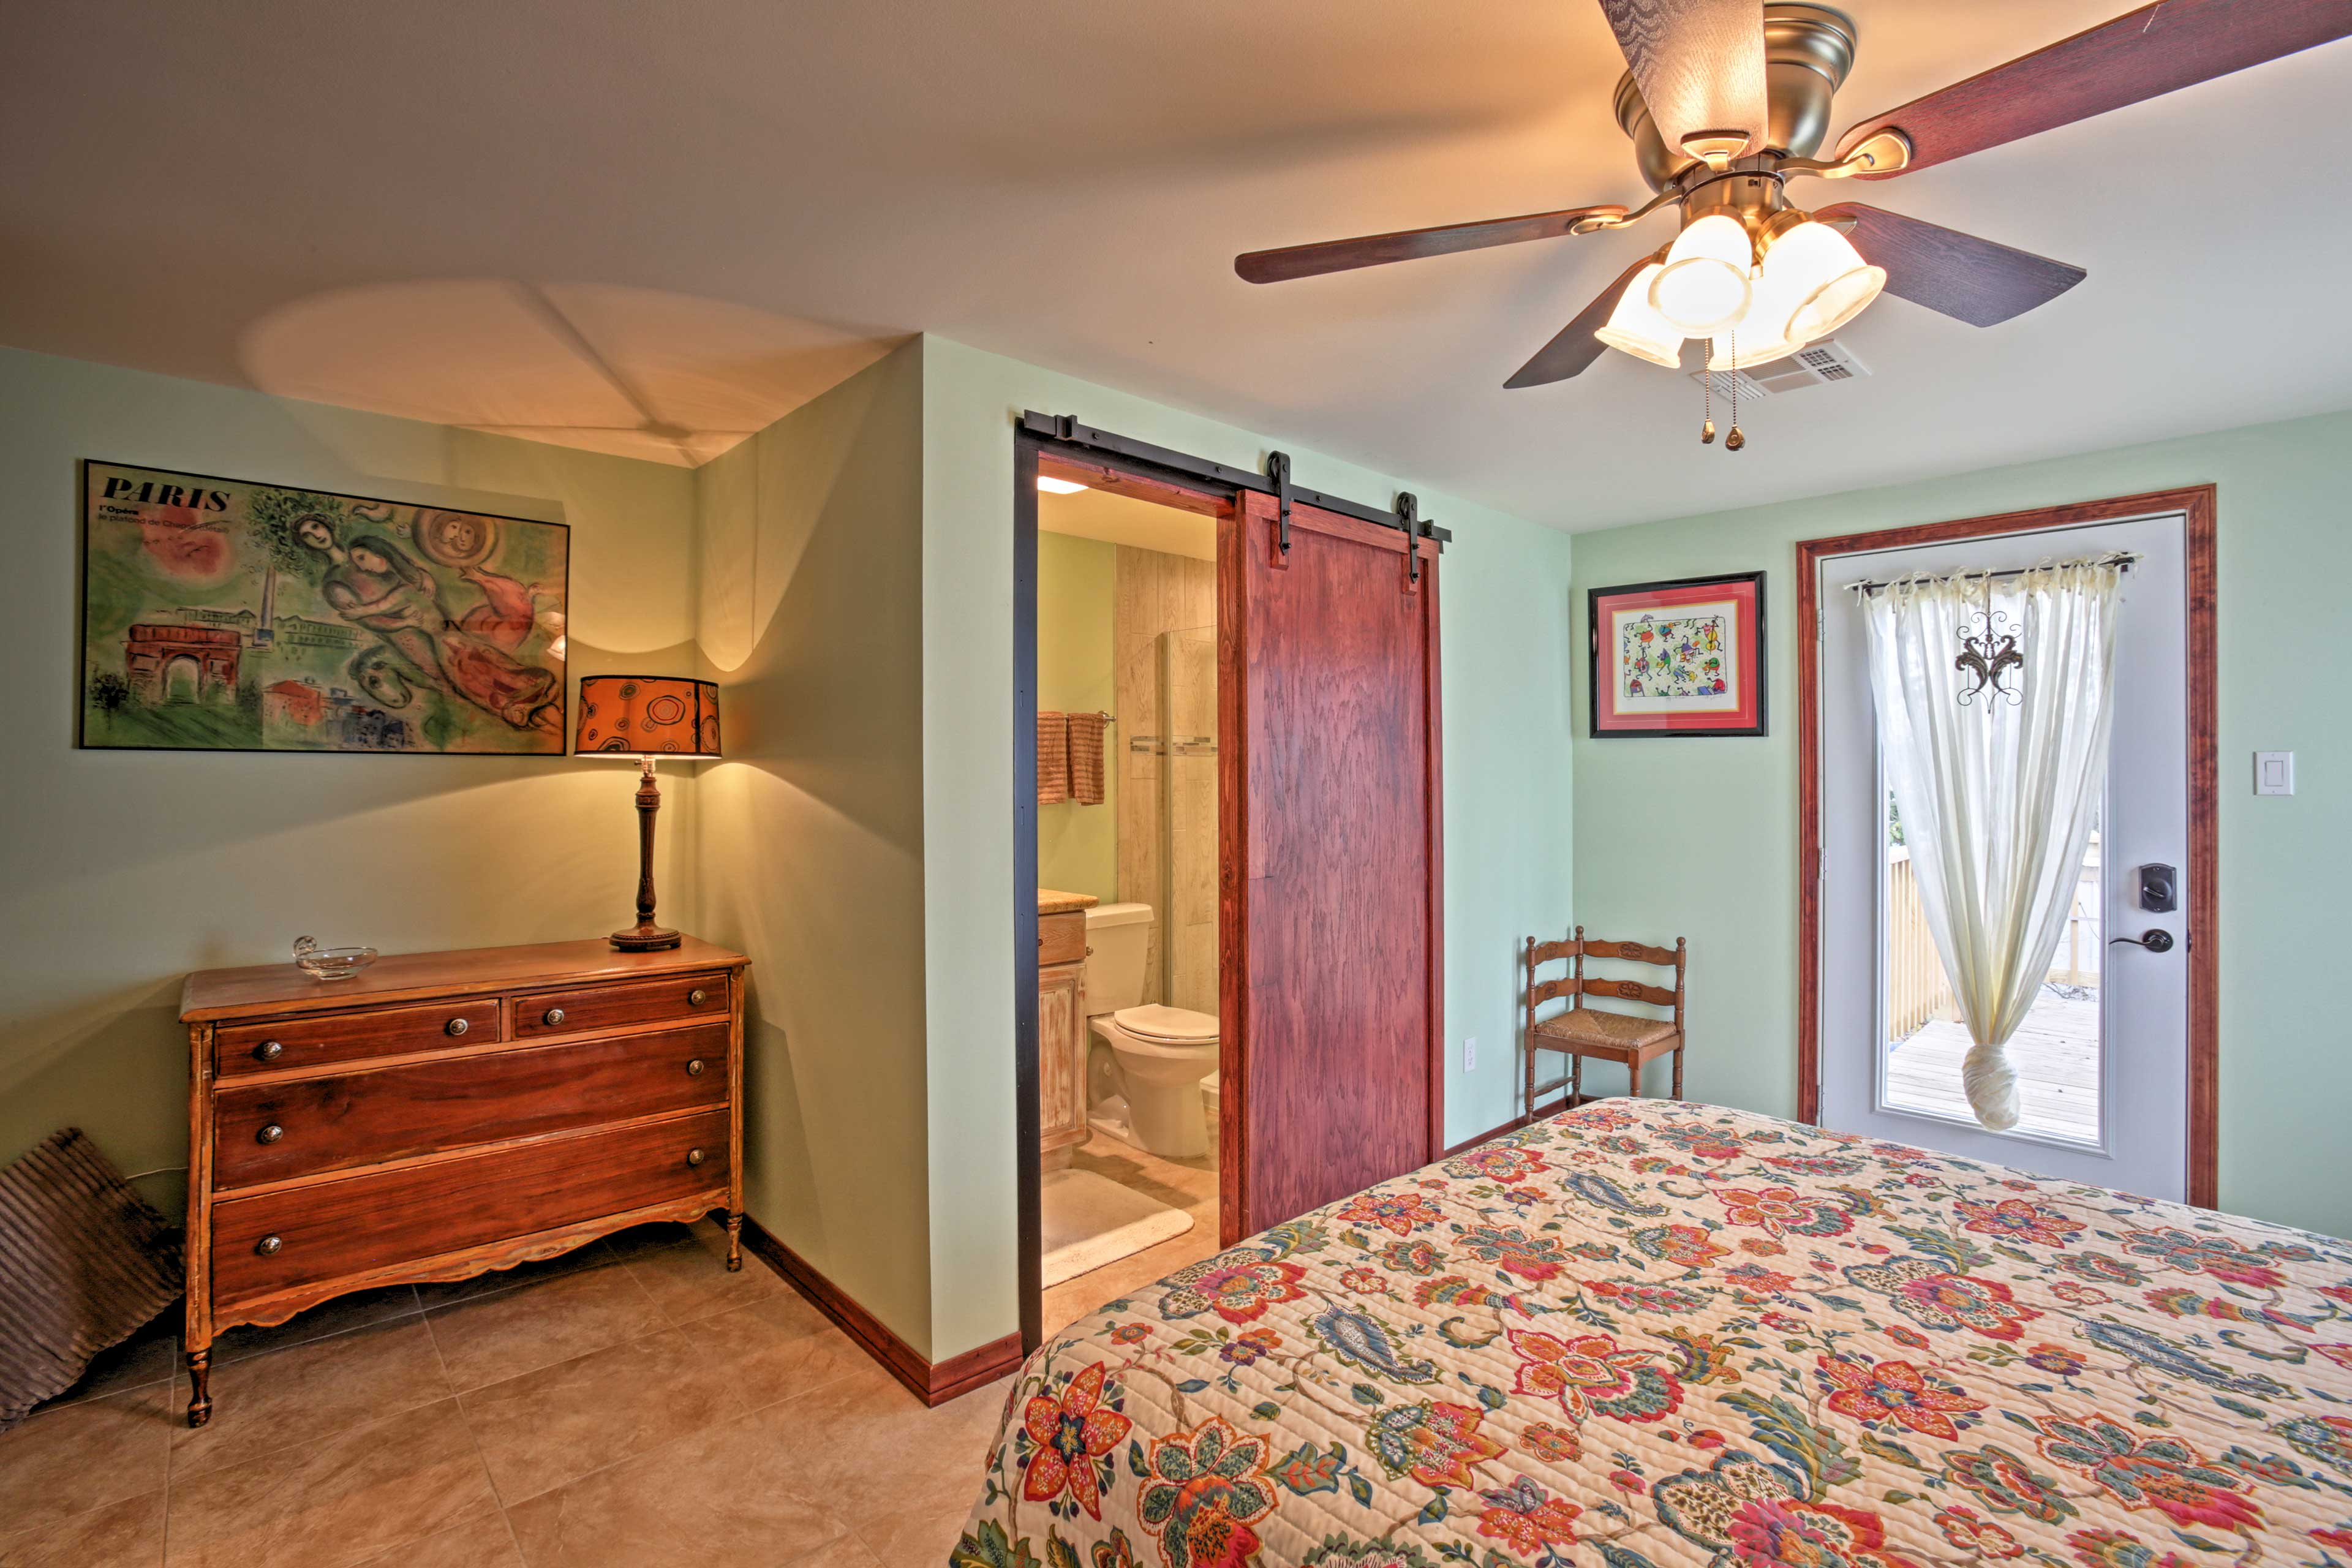 With an en-suite bathroom, the master bedroom feels like a luxury hotel suite.